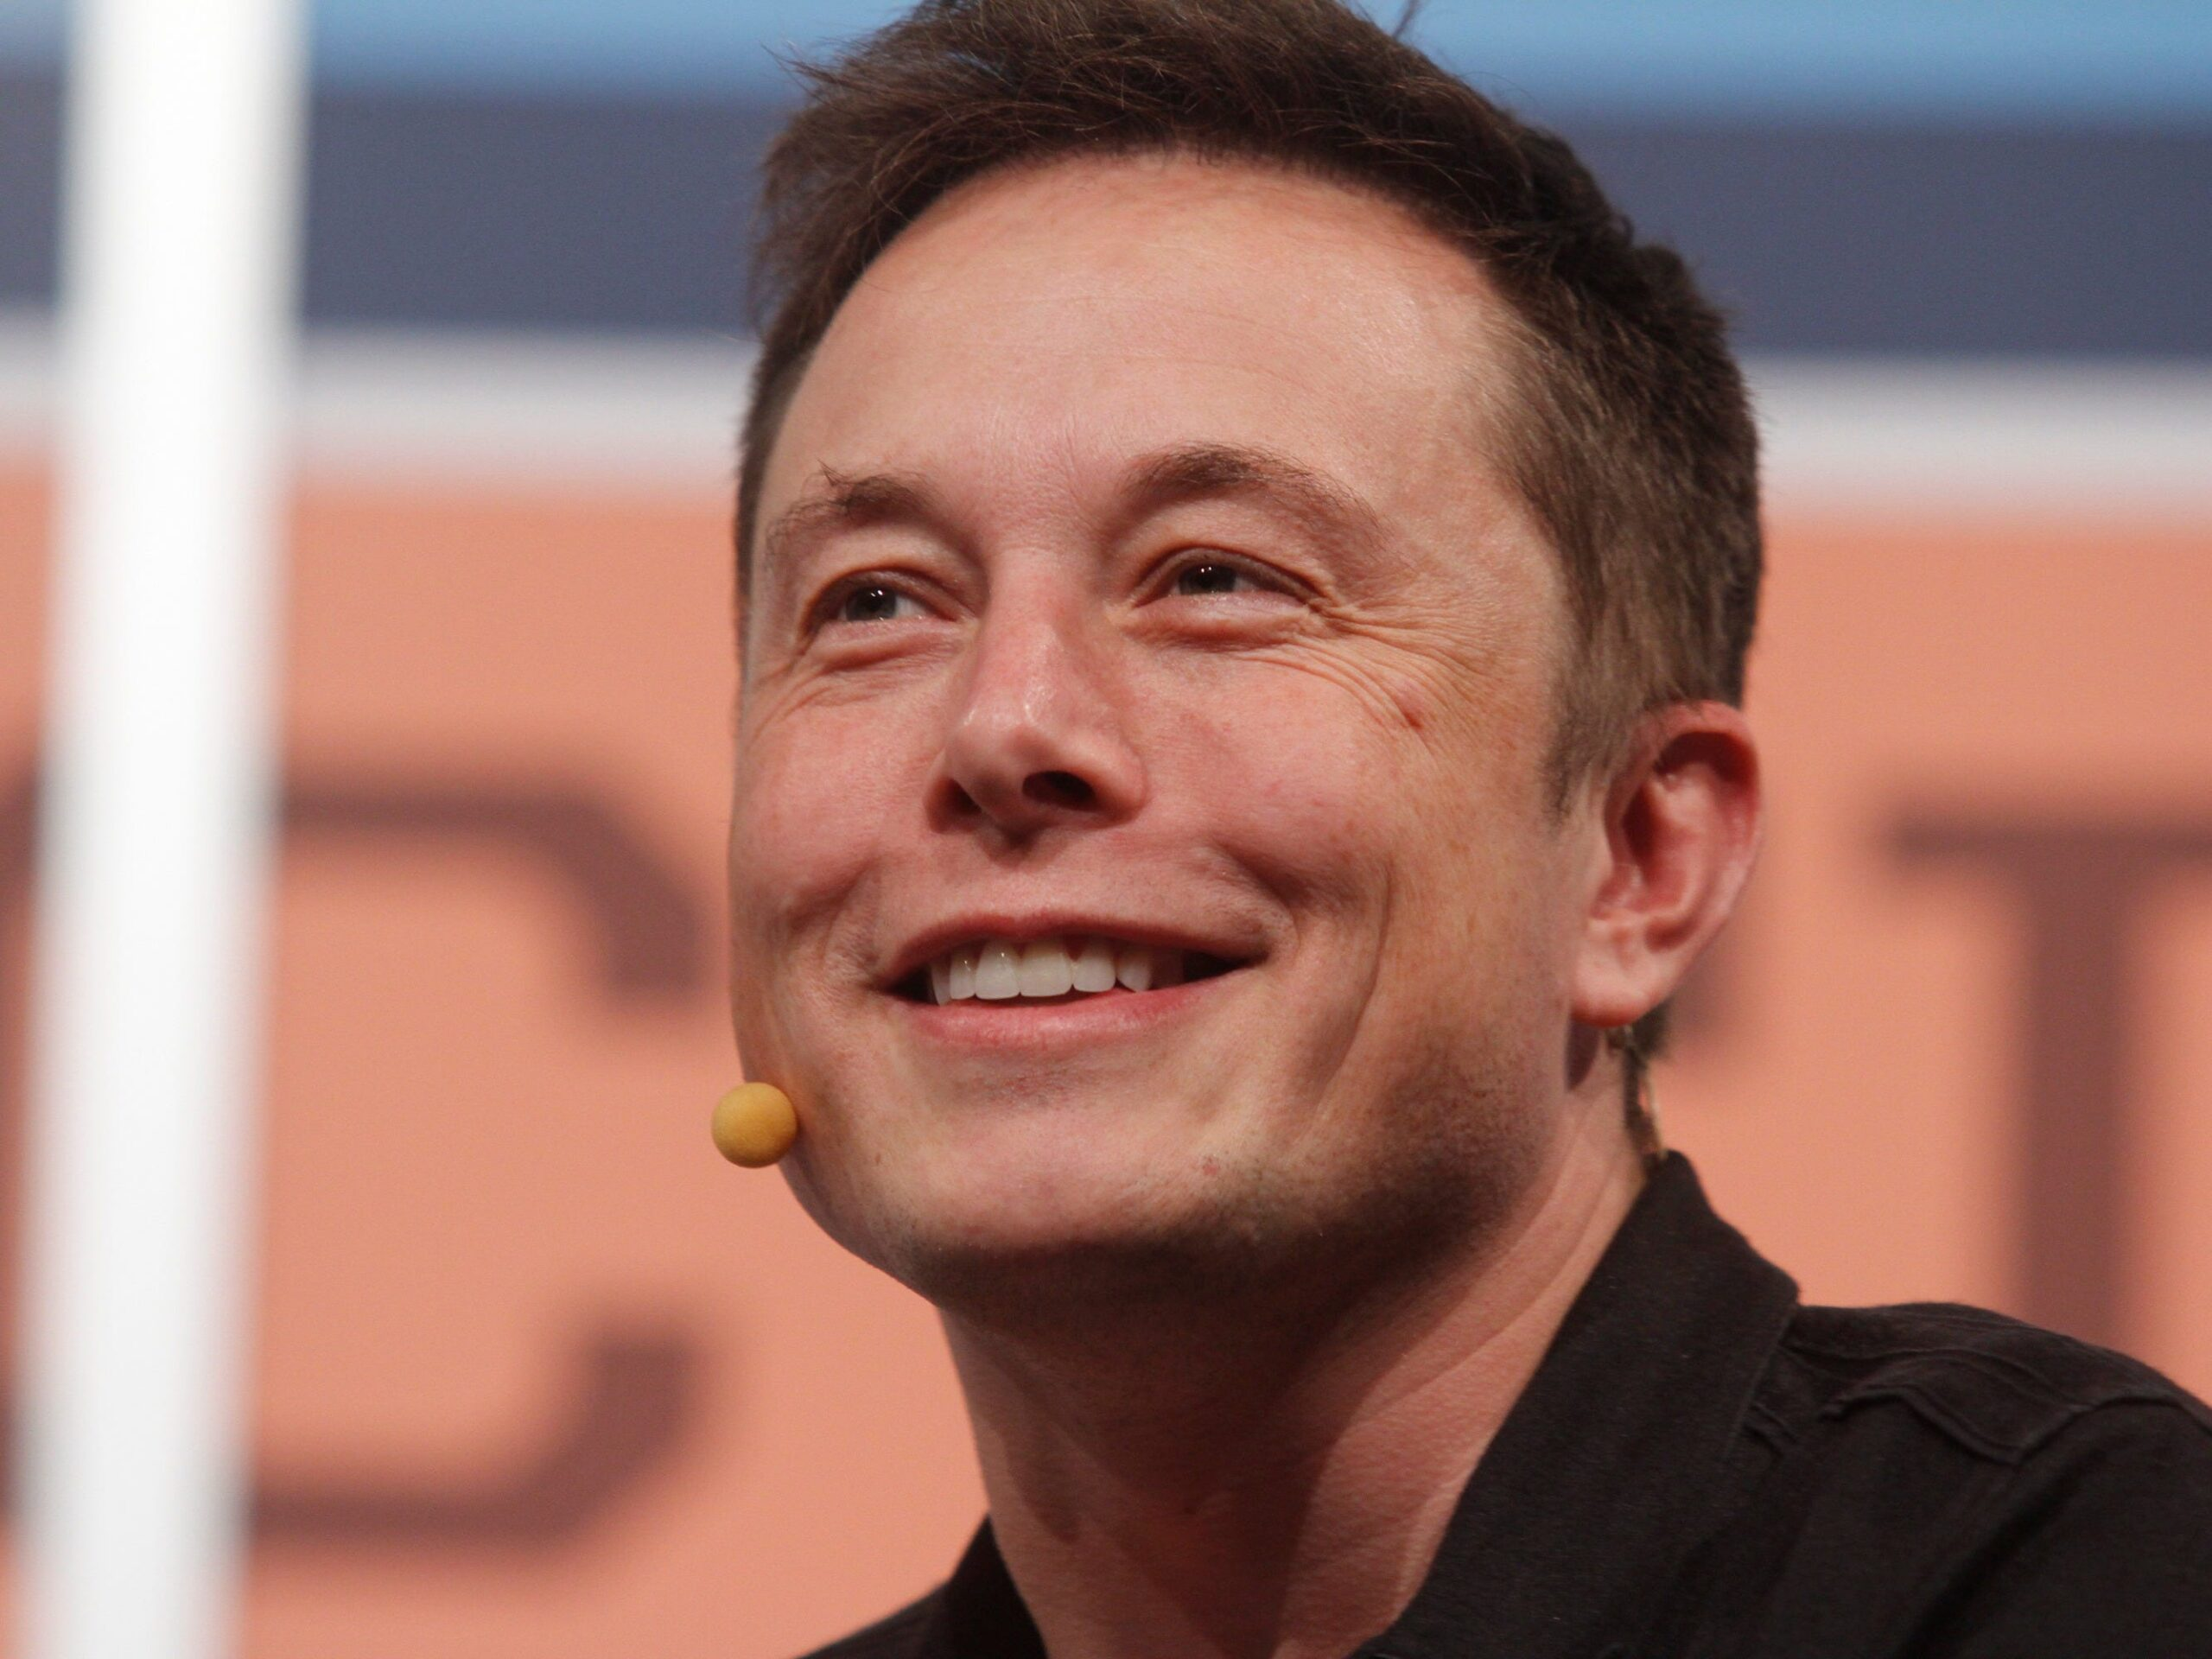 elon musk résumé all on one business insider resume building electrician sample Resume Business Insider Elon Musk Resume